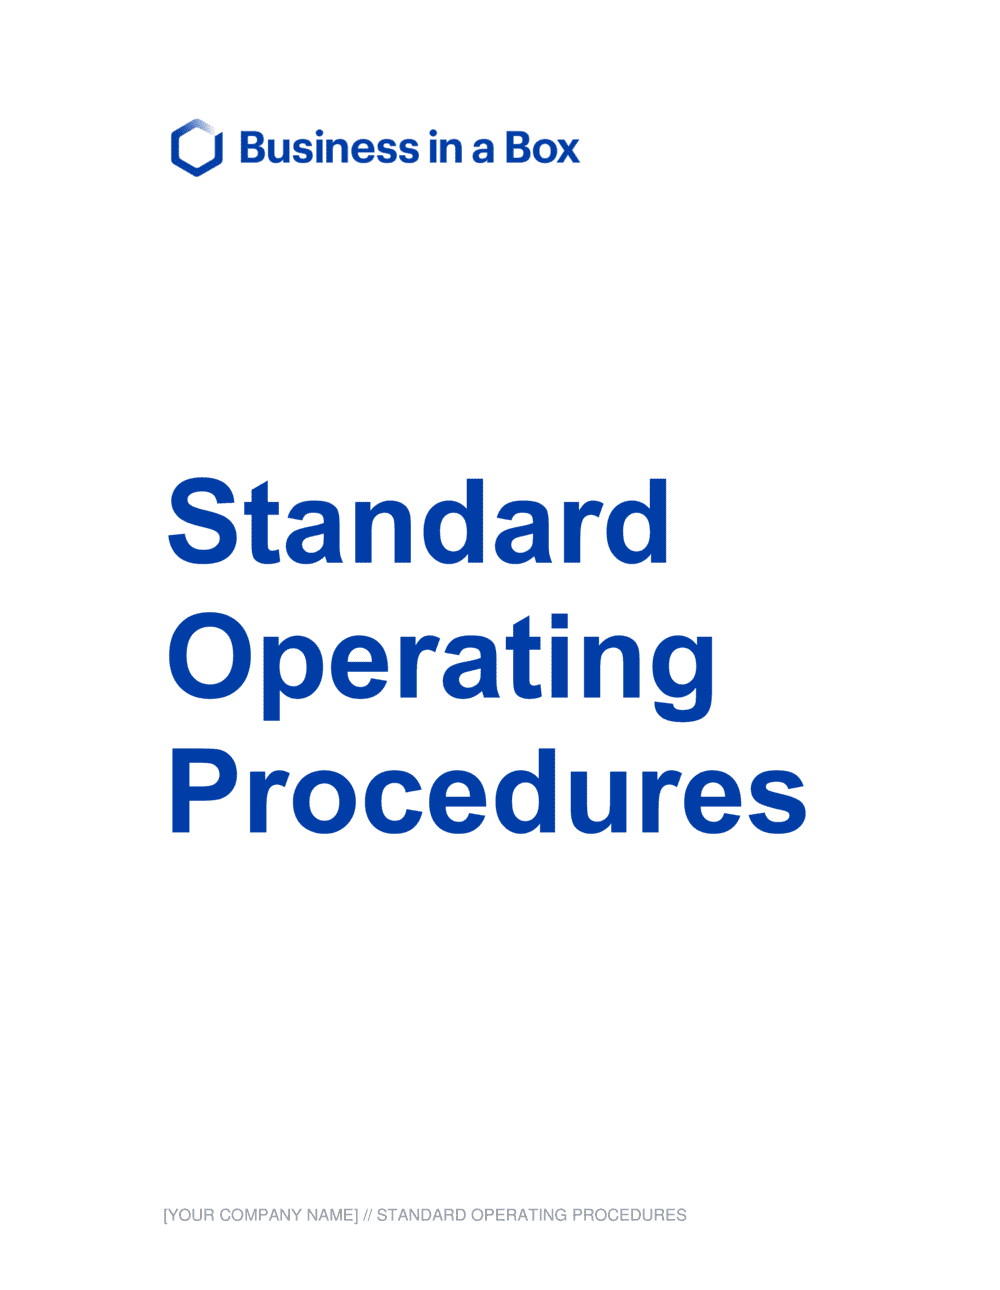 Business-in-a-Box's Standard Operating Procedures Template